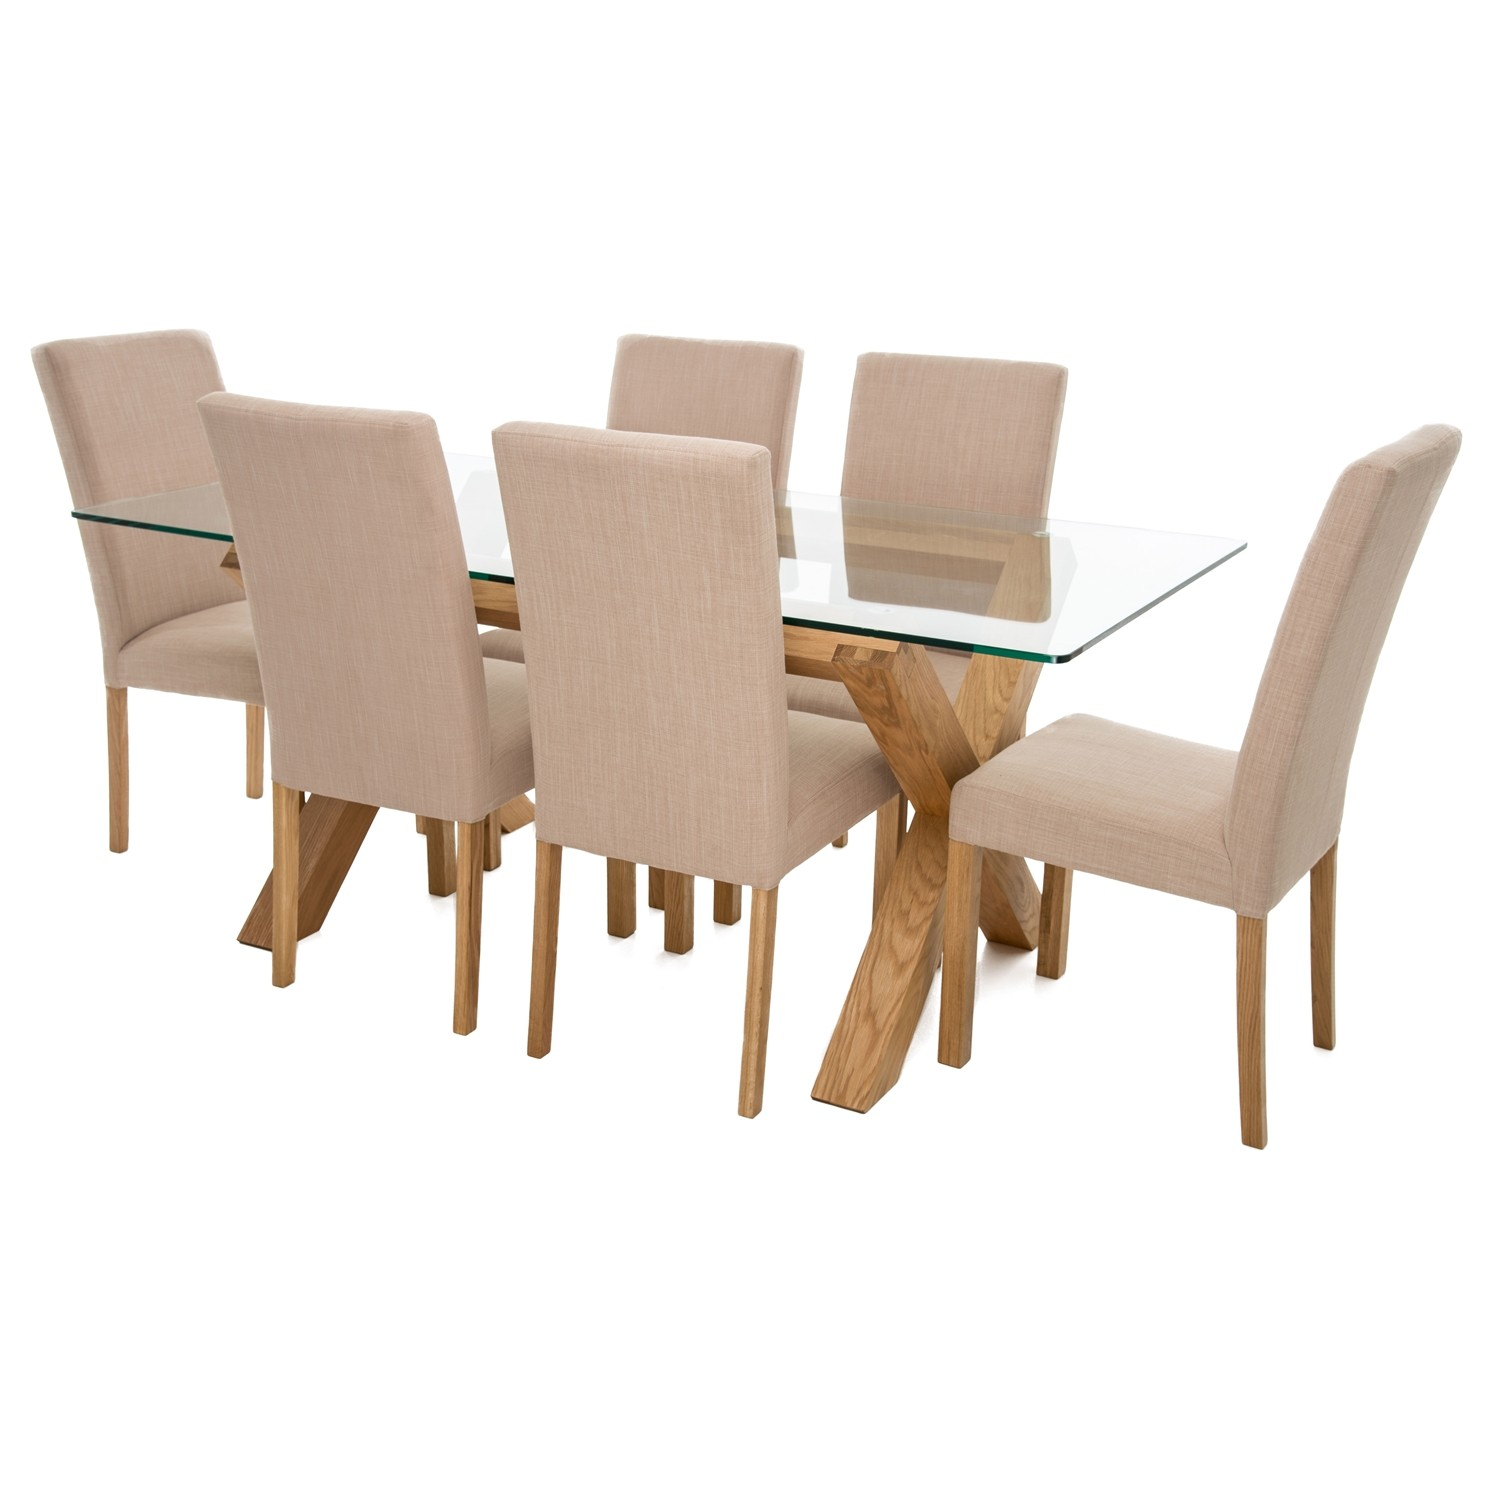 Dining table reasons why new dining tables are sweeter for Dining room table for 2